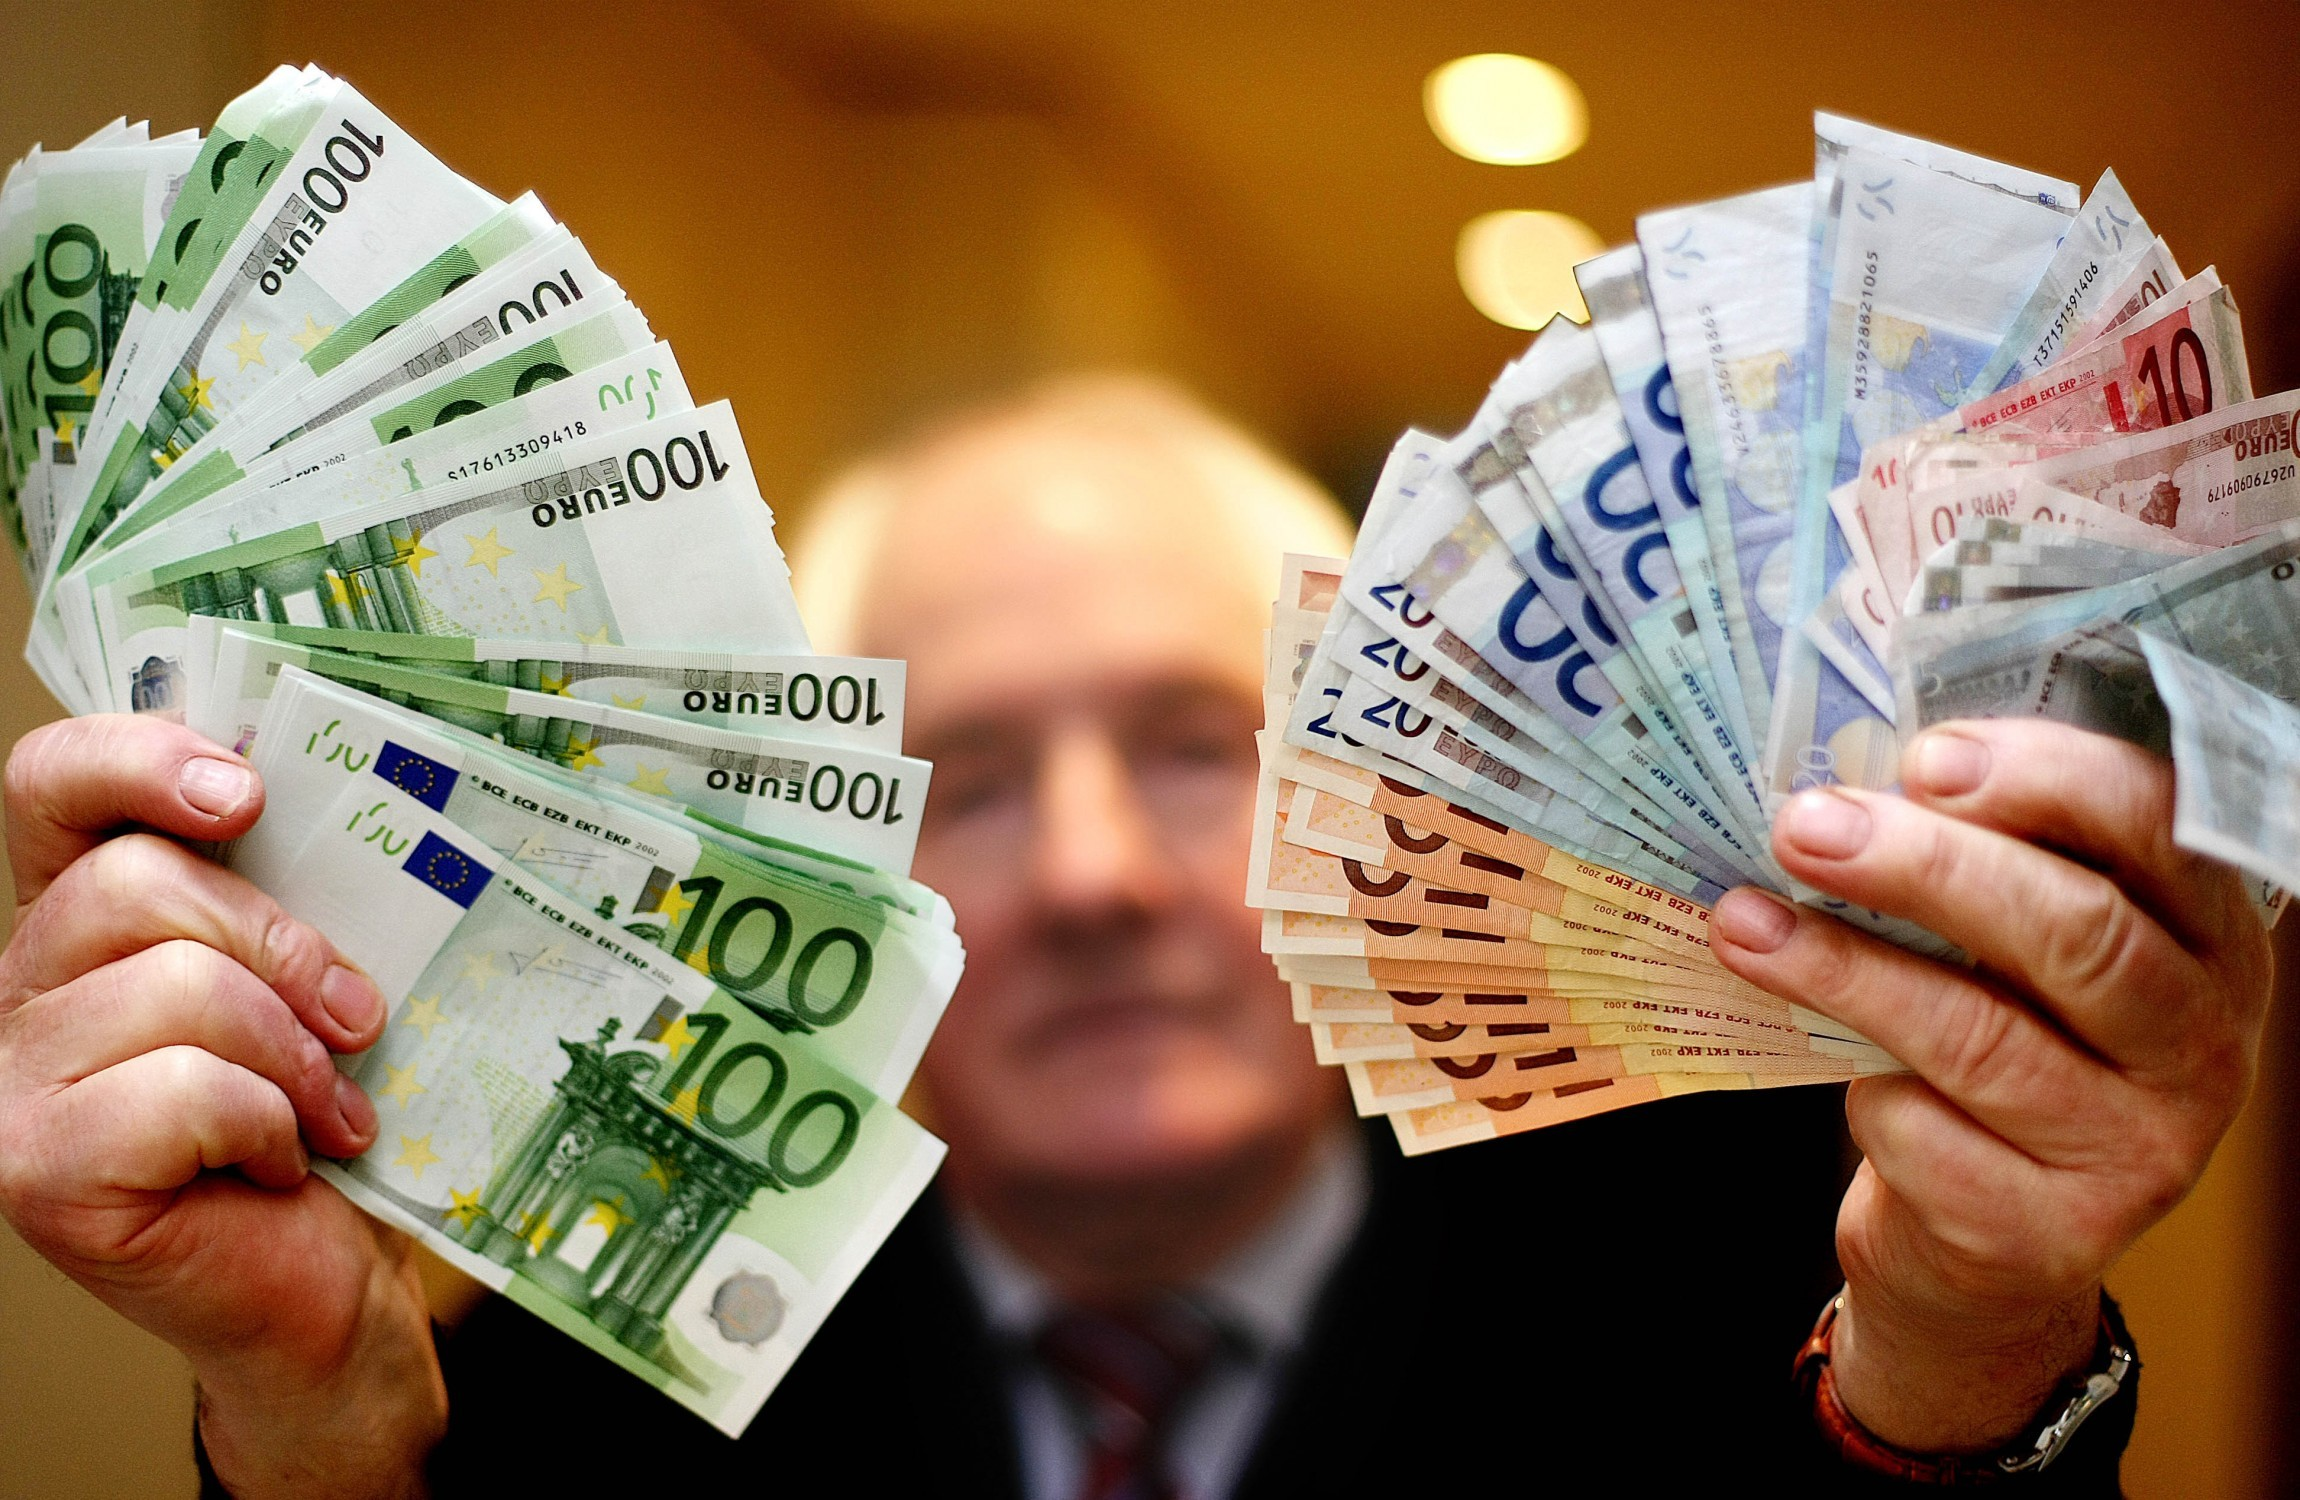 Dubliners have the highest disposable incomes, CSO says